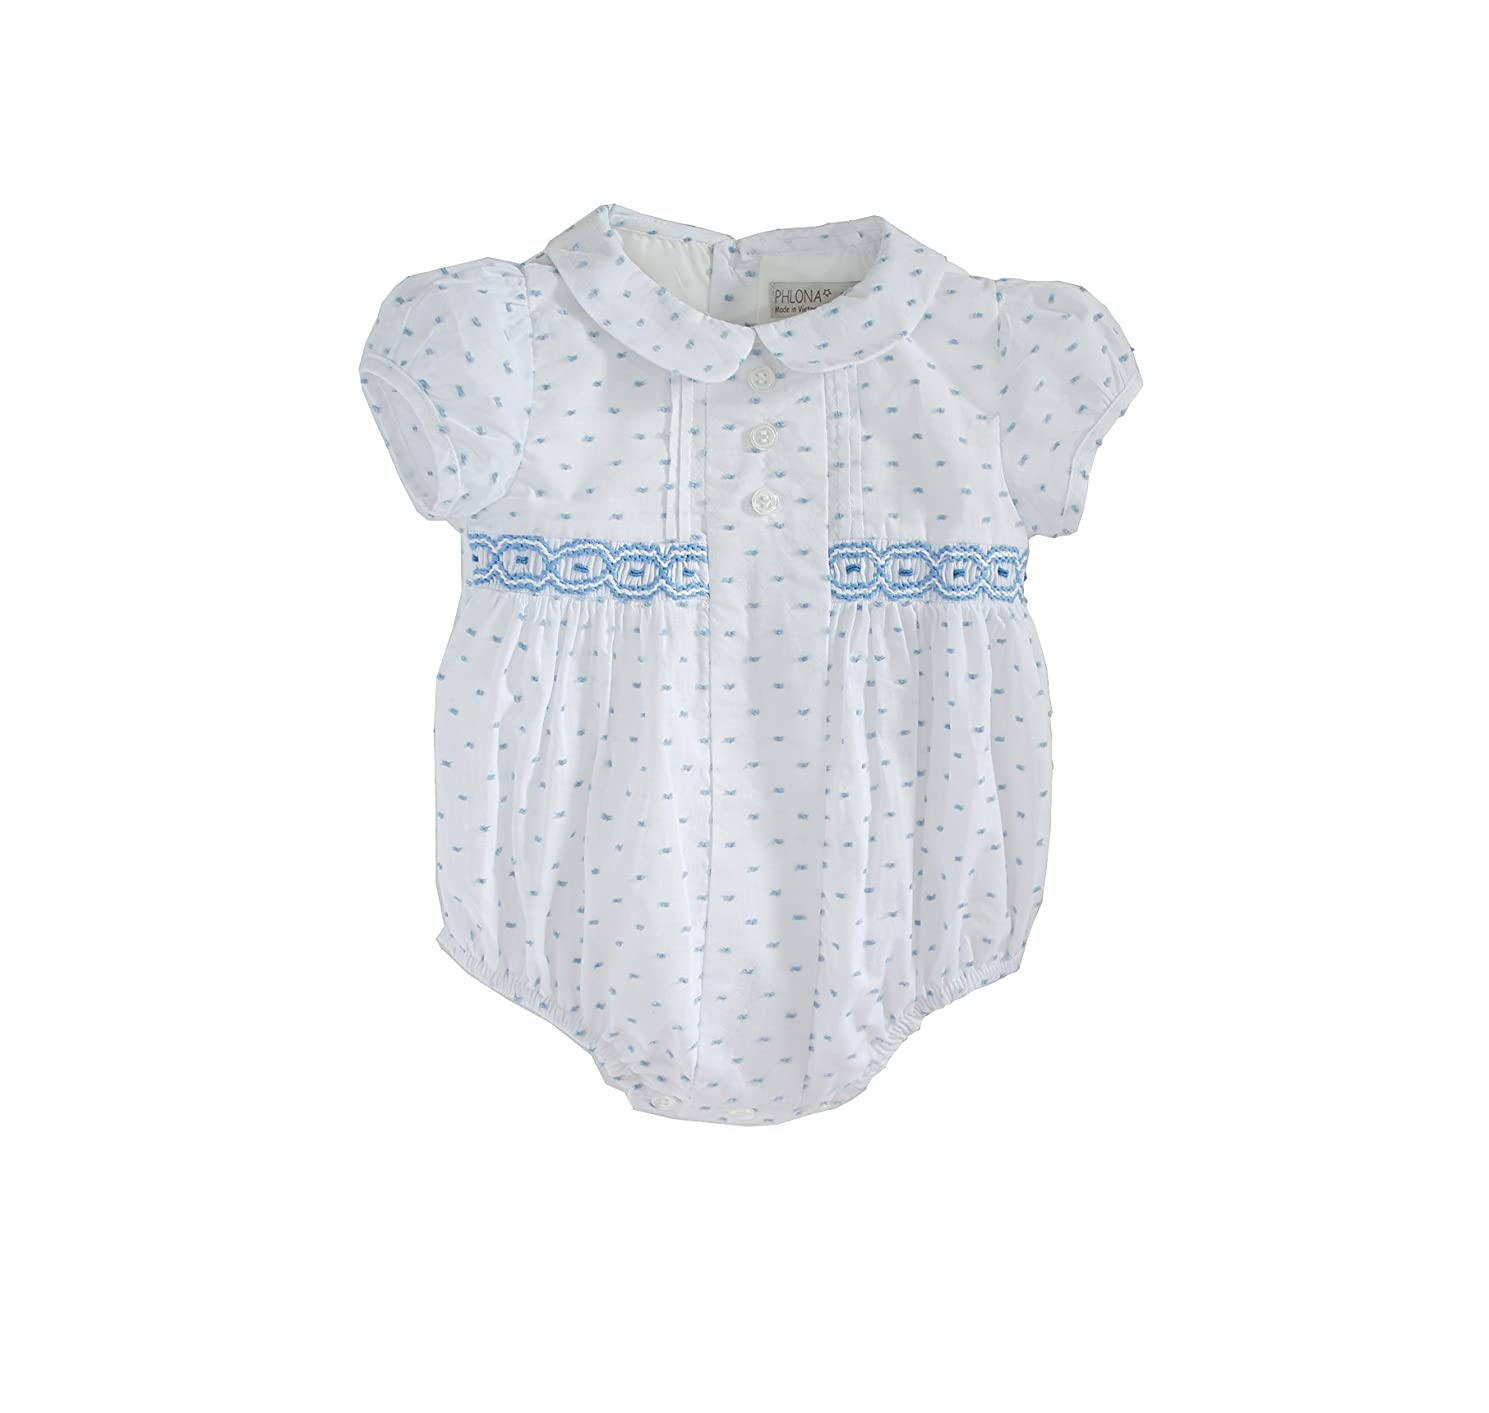 Phlona Baby Boy Smocked Bubble Bodysuit